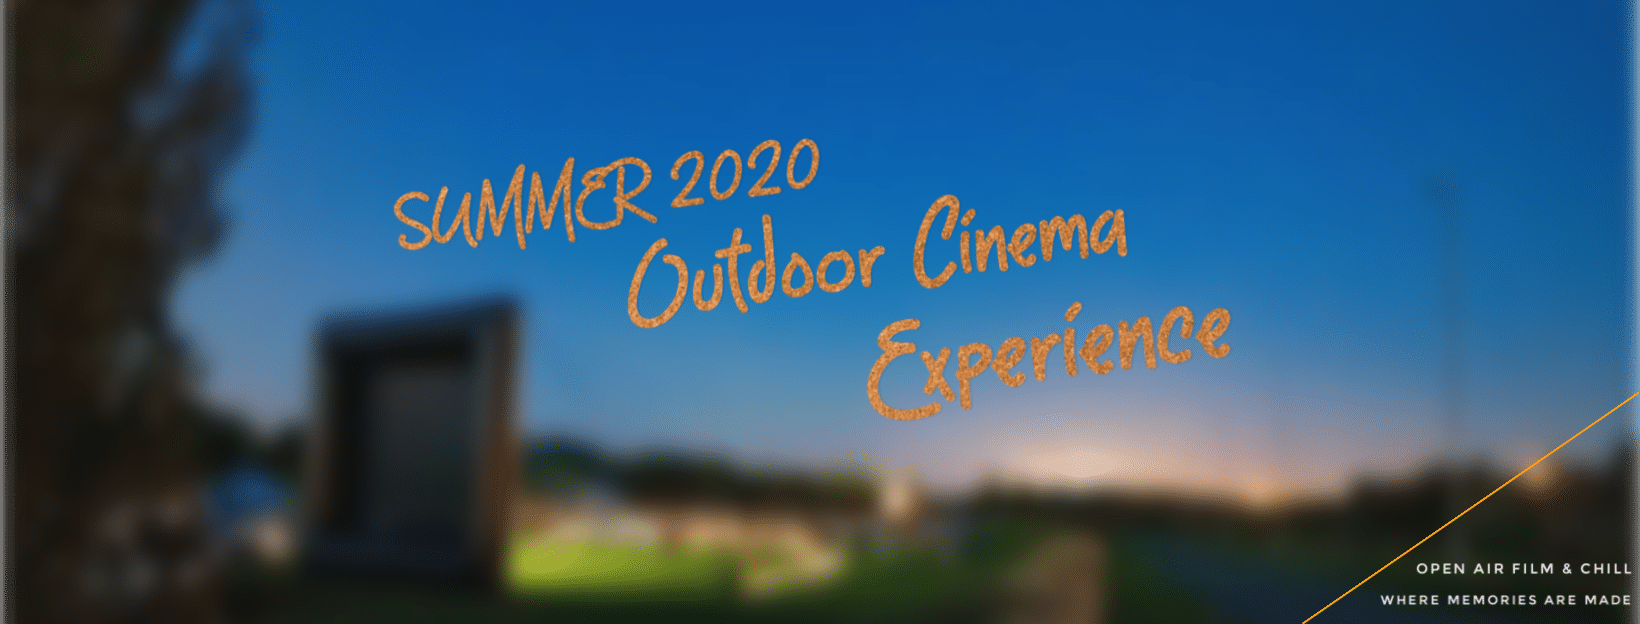 poster advertising summer 2020 outdoor cinema experience